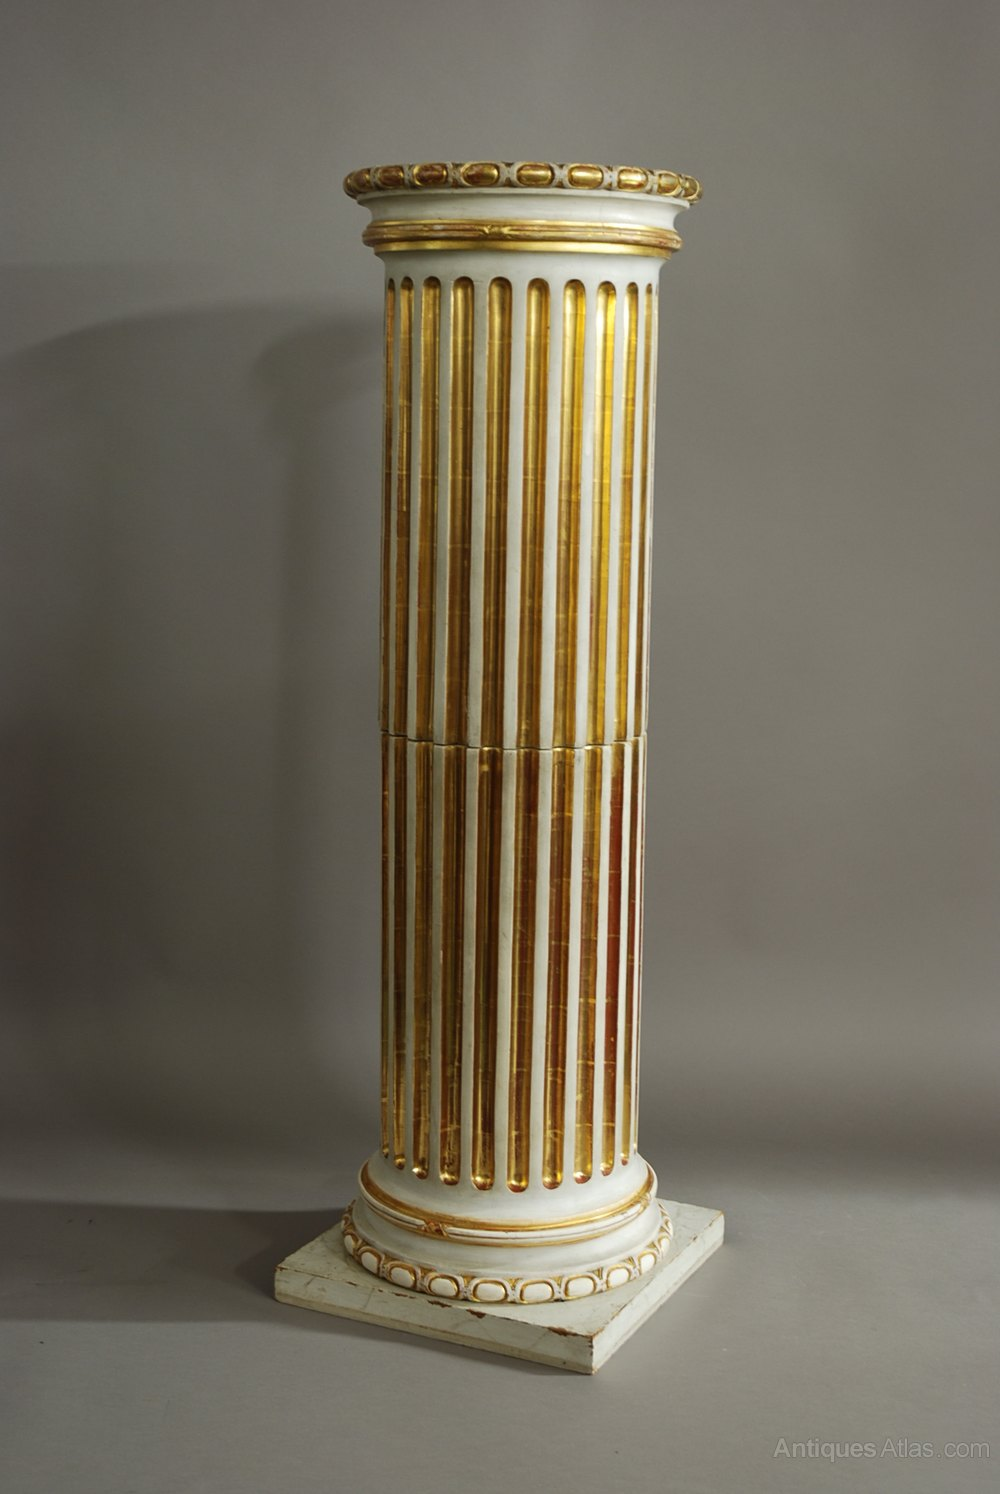 Columns For Sale >> Antiques Atlas - Classical Style Carved Wooden Fluted Column